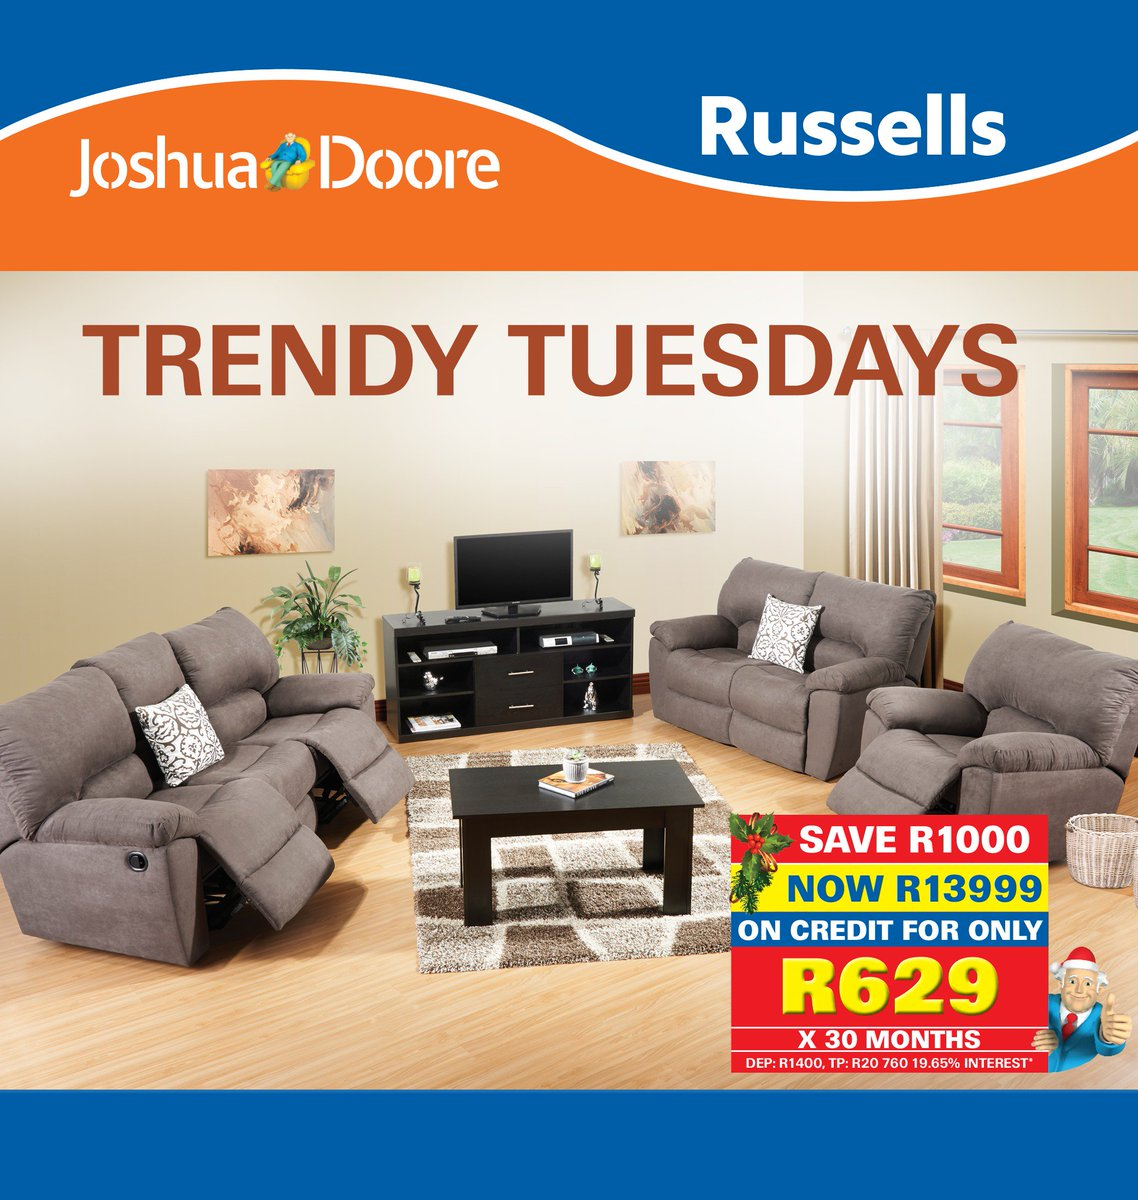 Russells On Twitter SAVE R1000 When You Purchase This Stunning COLT 3 PIECE LOUNGE SUITE Only At Joshua Doore Tco 69adGiJ3Uj